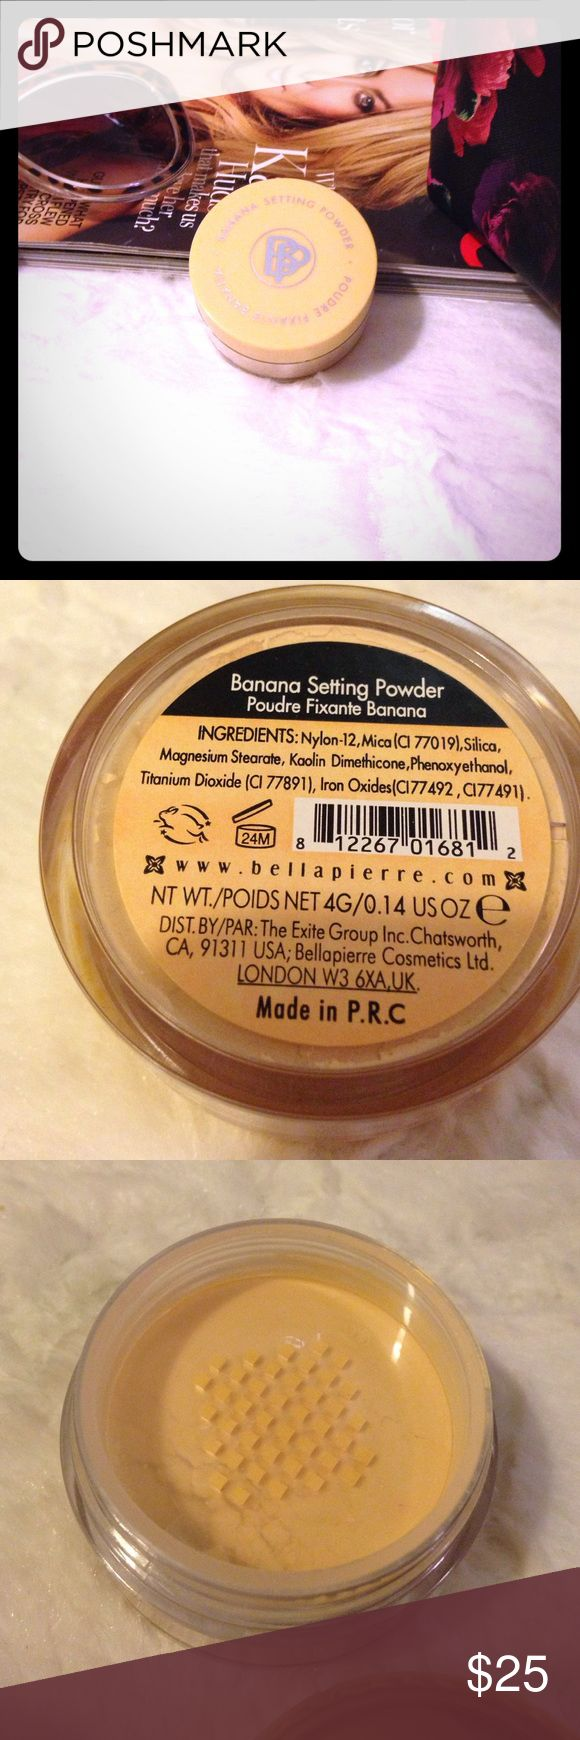 BELLA PIERRE Banana Setting Powder FULL SIZE of Bella Pierre's Banana Setting Powder. A color correcting setting Powder with a yellow hue to counteract redness or discoloration. Sealed, never used or swatched.  ▪REASONABLE OFFERS WELCOMED or BUNDLE FOR 15% OFF!▪️ Bella Pierre Makeup Face Powder